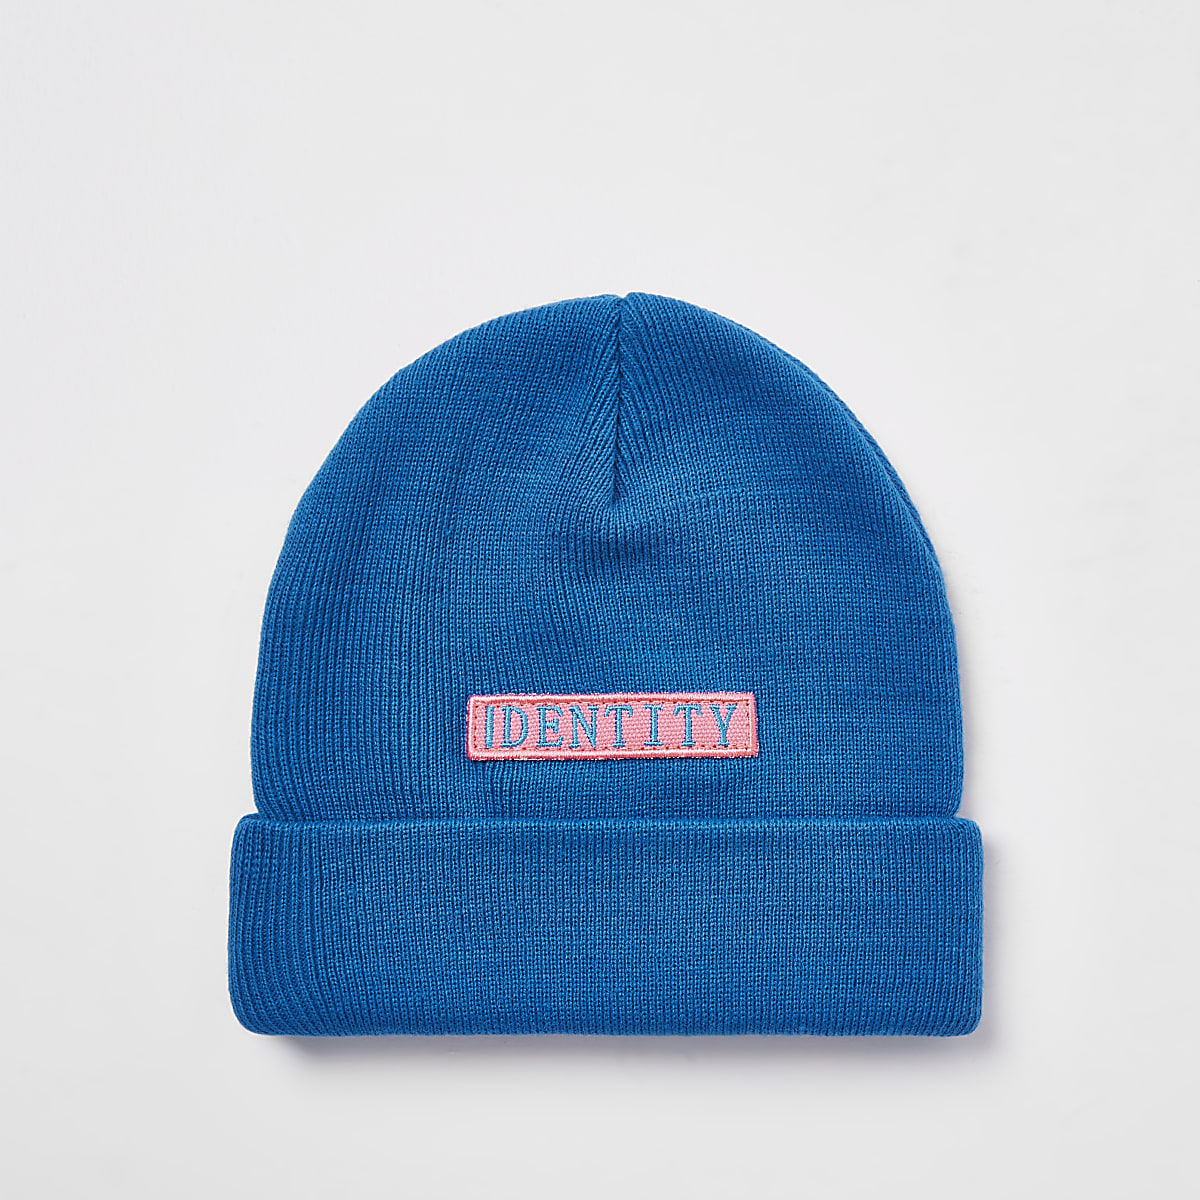 Be Inclusive blue 'Identity' beanie hat